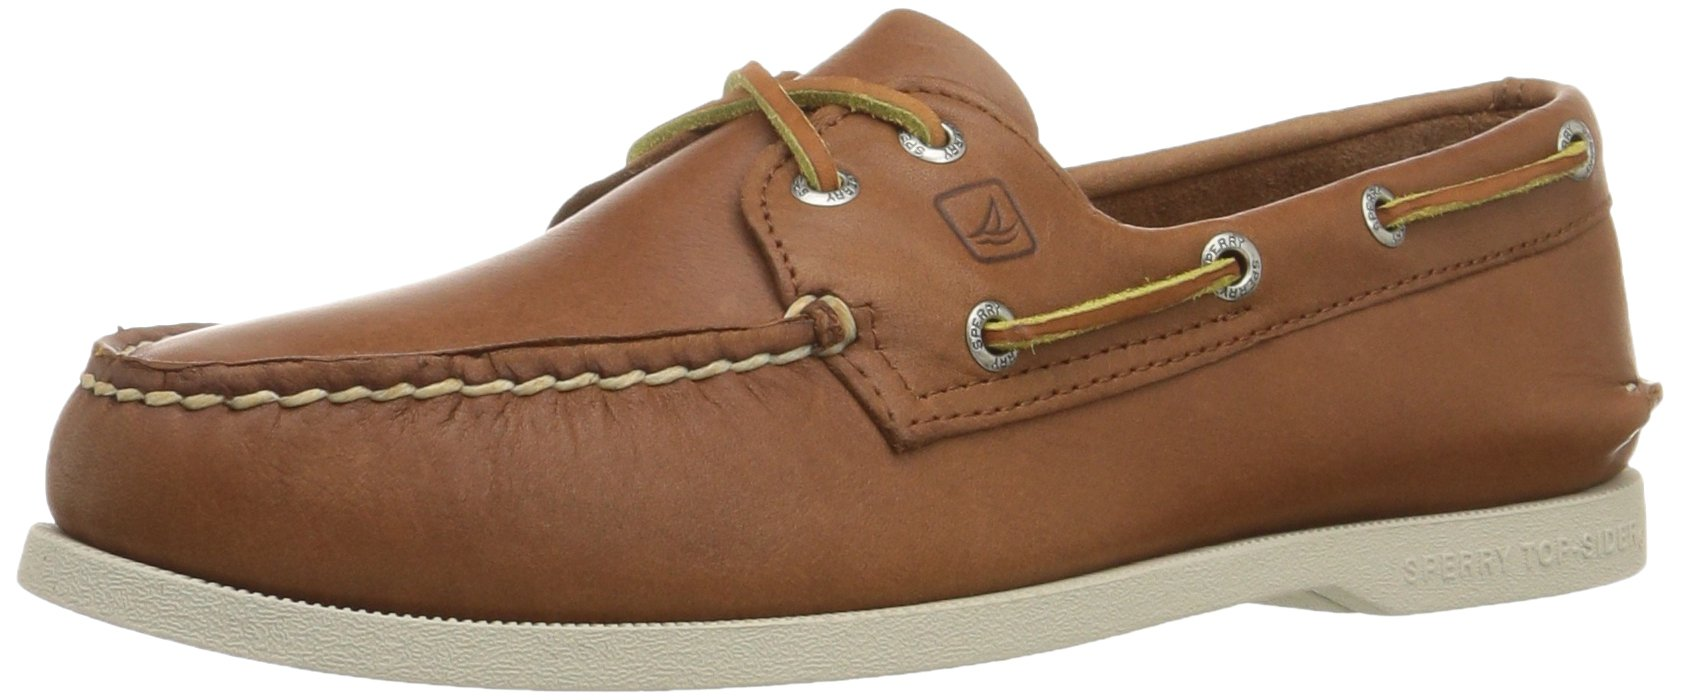 Sperry Top-Sider Men's A/O 2 Eye Boat Shoe,Tan,10.5 M US by Sperry Top-Sider